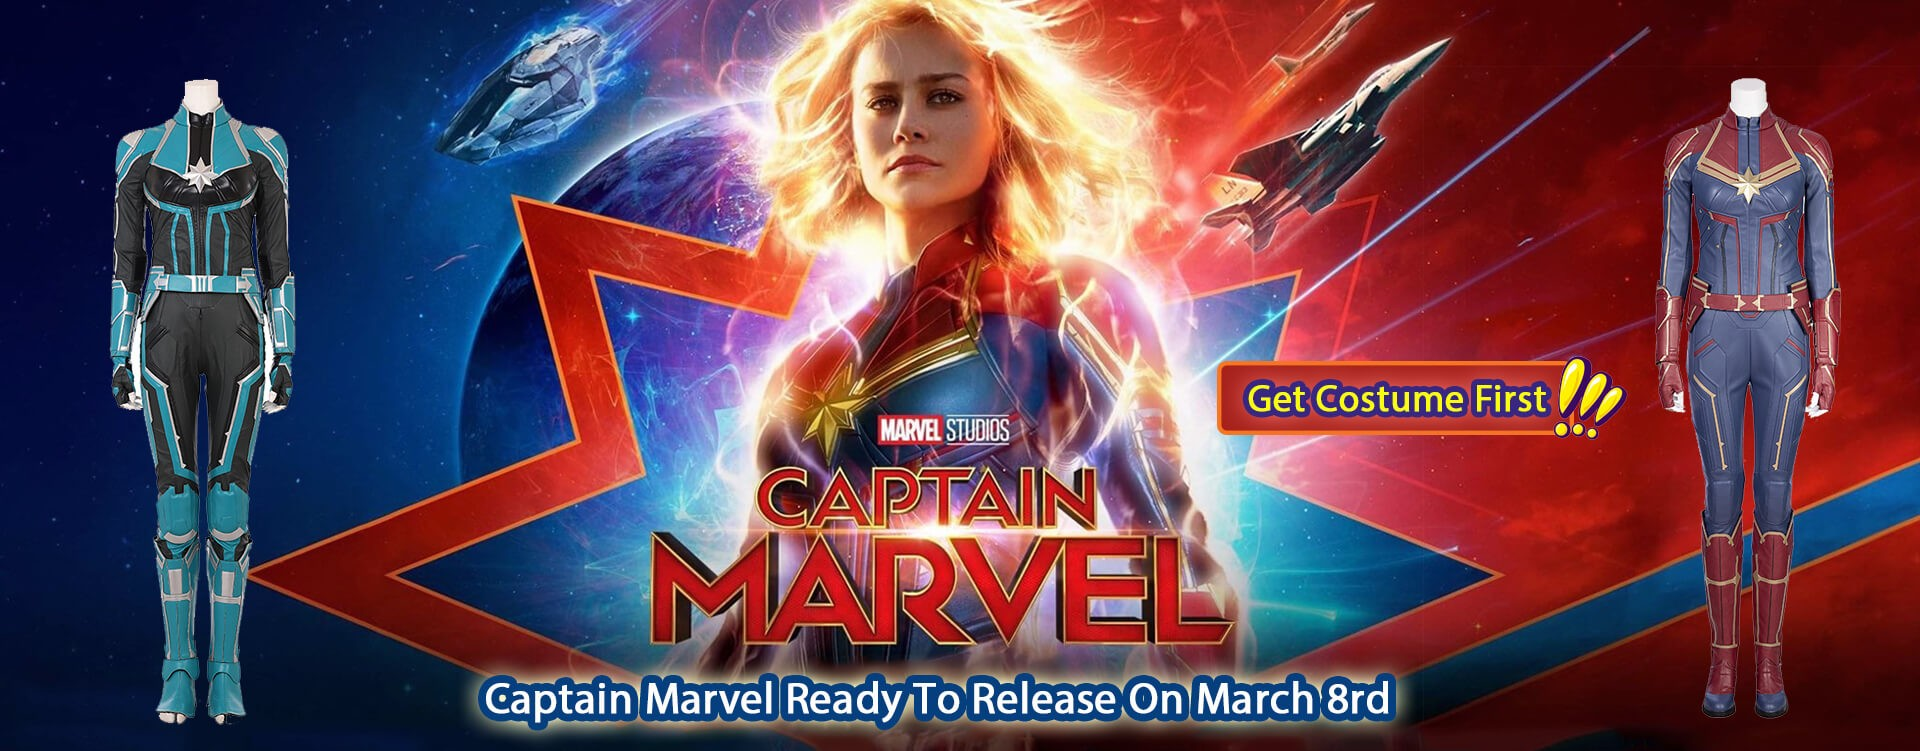 Captain Marvel Ready To Release On March 8rd